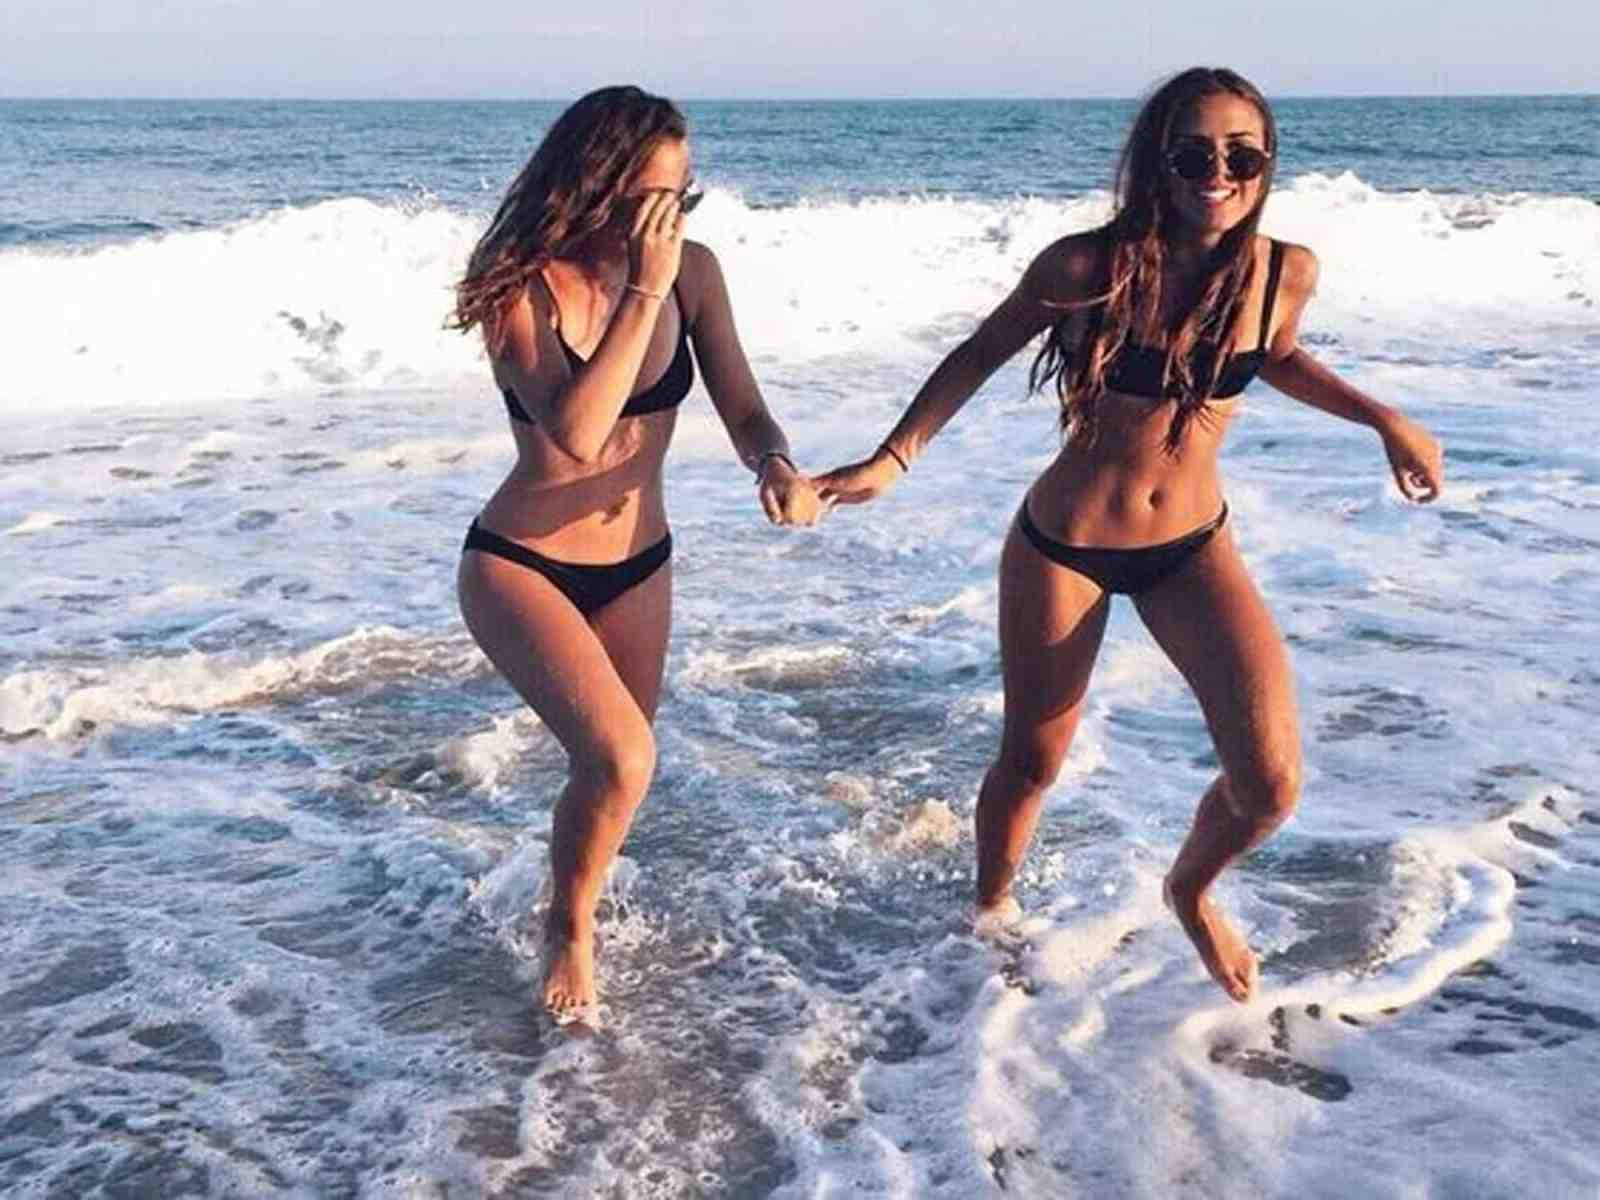 Summer is vast approaching so we got to do what we got to do if we want our bodies to be beach bod ready! You don't necessarily have to go to the gym though to achieve your beach body goals. Here are 5 simple workouts you can do to get your body ready.